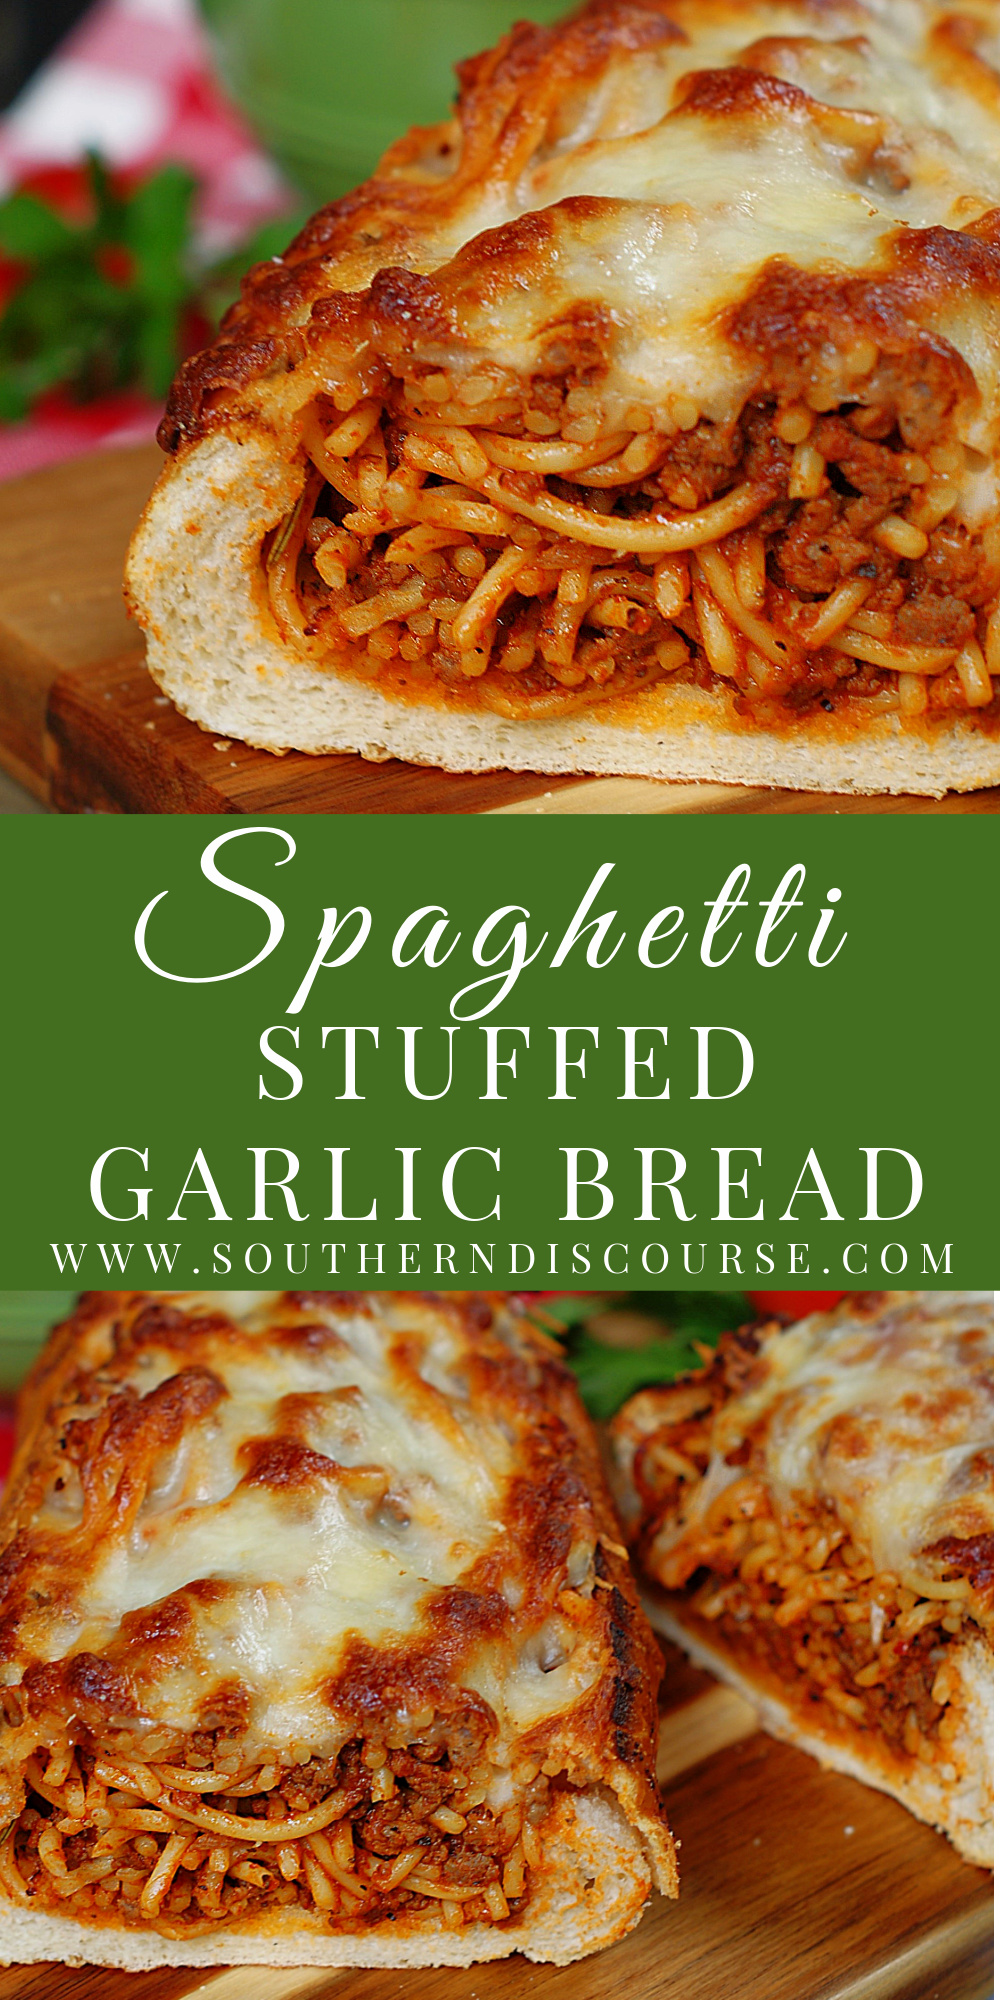 This easy, baked spaghetti stuffed garlic bread makes a great family dinner! Crisp garlic bread stuffed with homemade, cheesy spaghetti made with beef and sausage will turn dinner time into Italian bistro night! #southerndiscourse #homemade #bakedspaghetti #outofthisworld #milliondollar